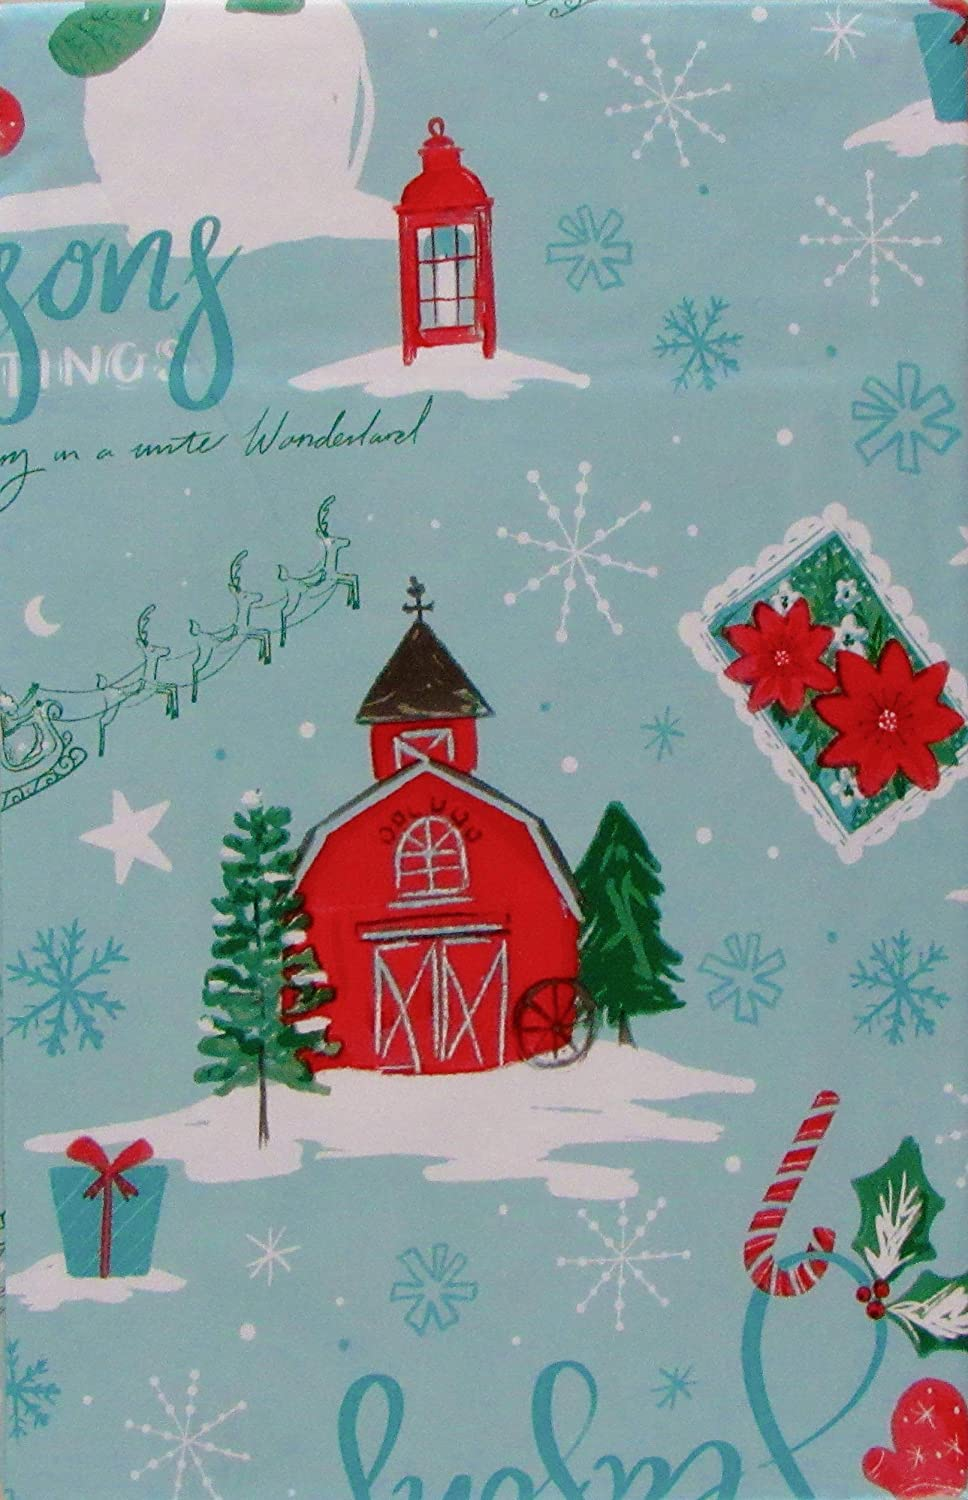 Christmas Walking in a Winter Wonderland Vinyl Flannel Tablecloth 52 x 70 Oblong